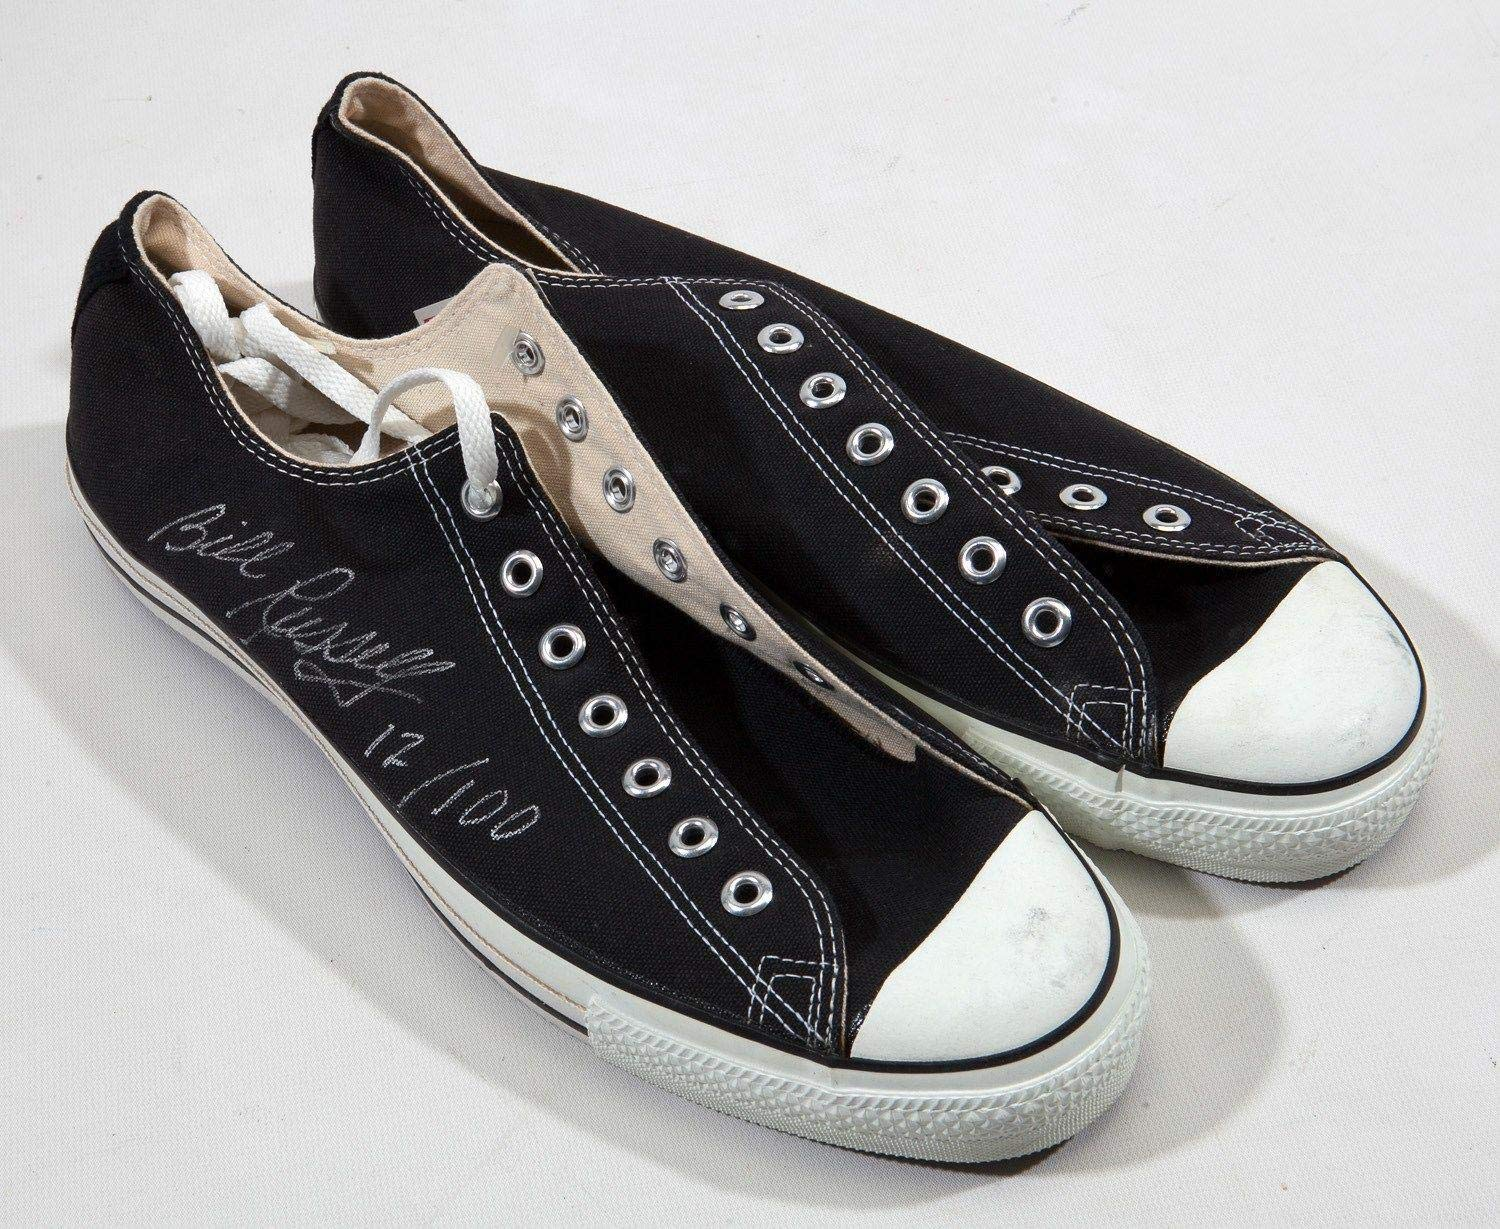 Bill Russell Signed Converse All Star Shoes Sneakers Boston Celtics COA PSA/DNA Certified Autographed Hats